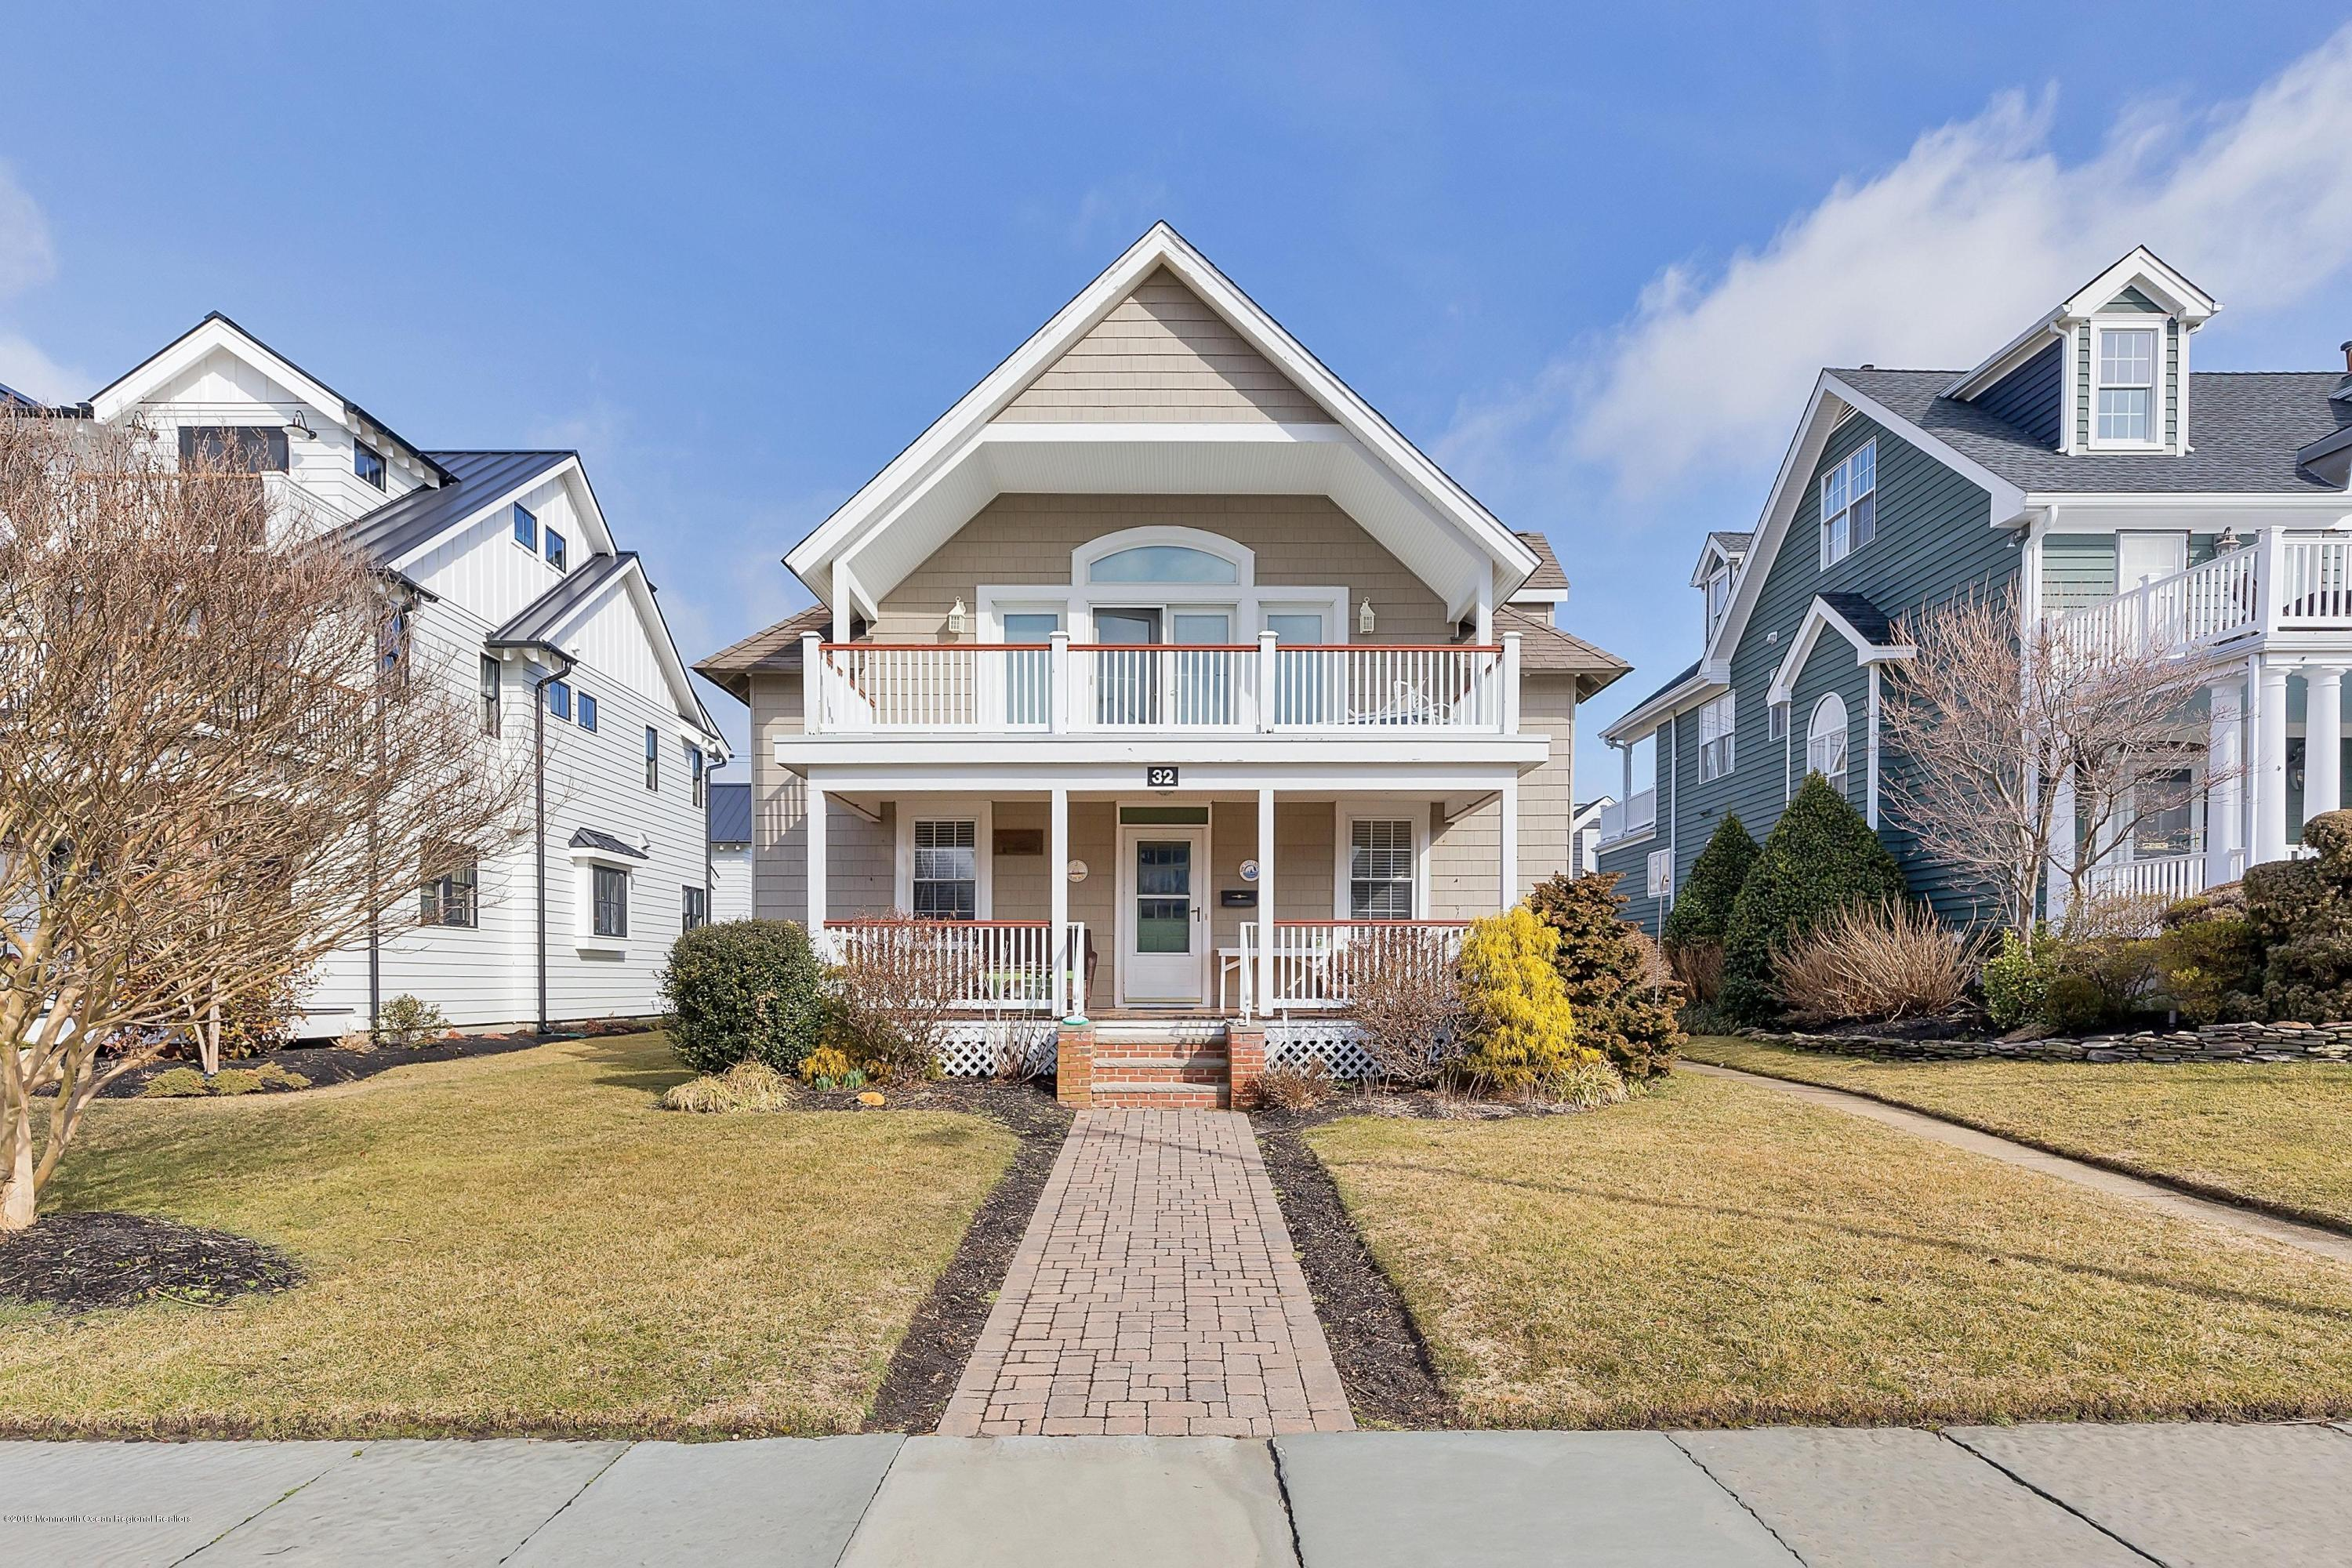 Photo of 32 Garfield Avenue, Avon-by-the-sea, NJ 07717